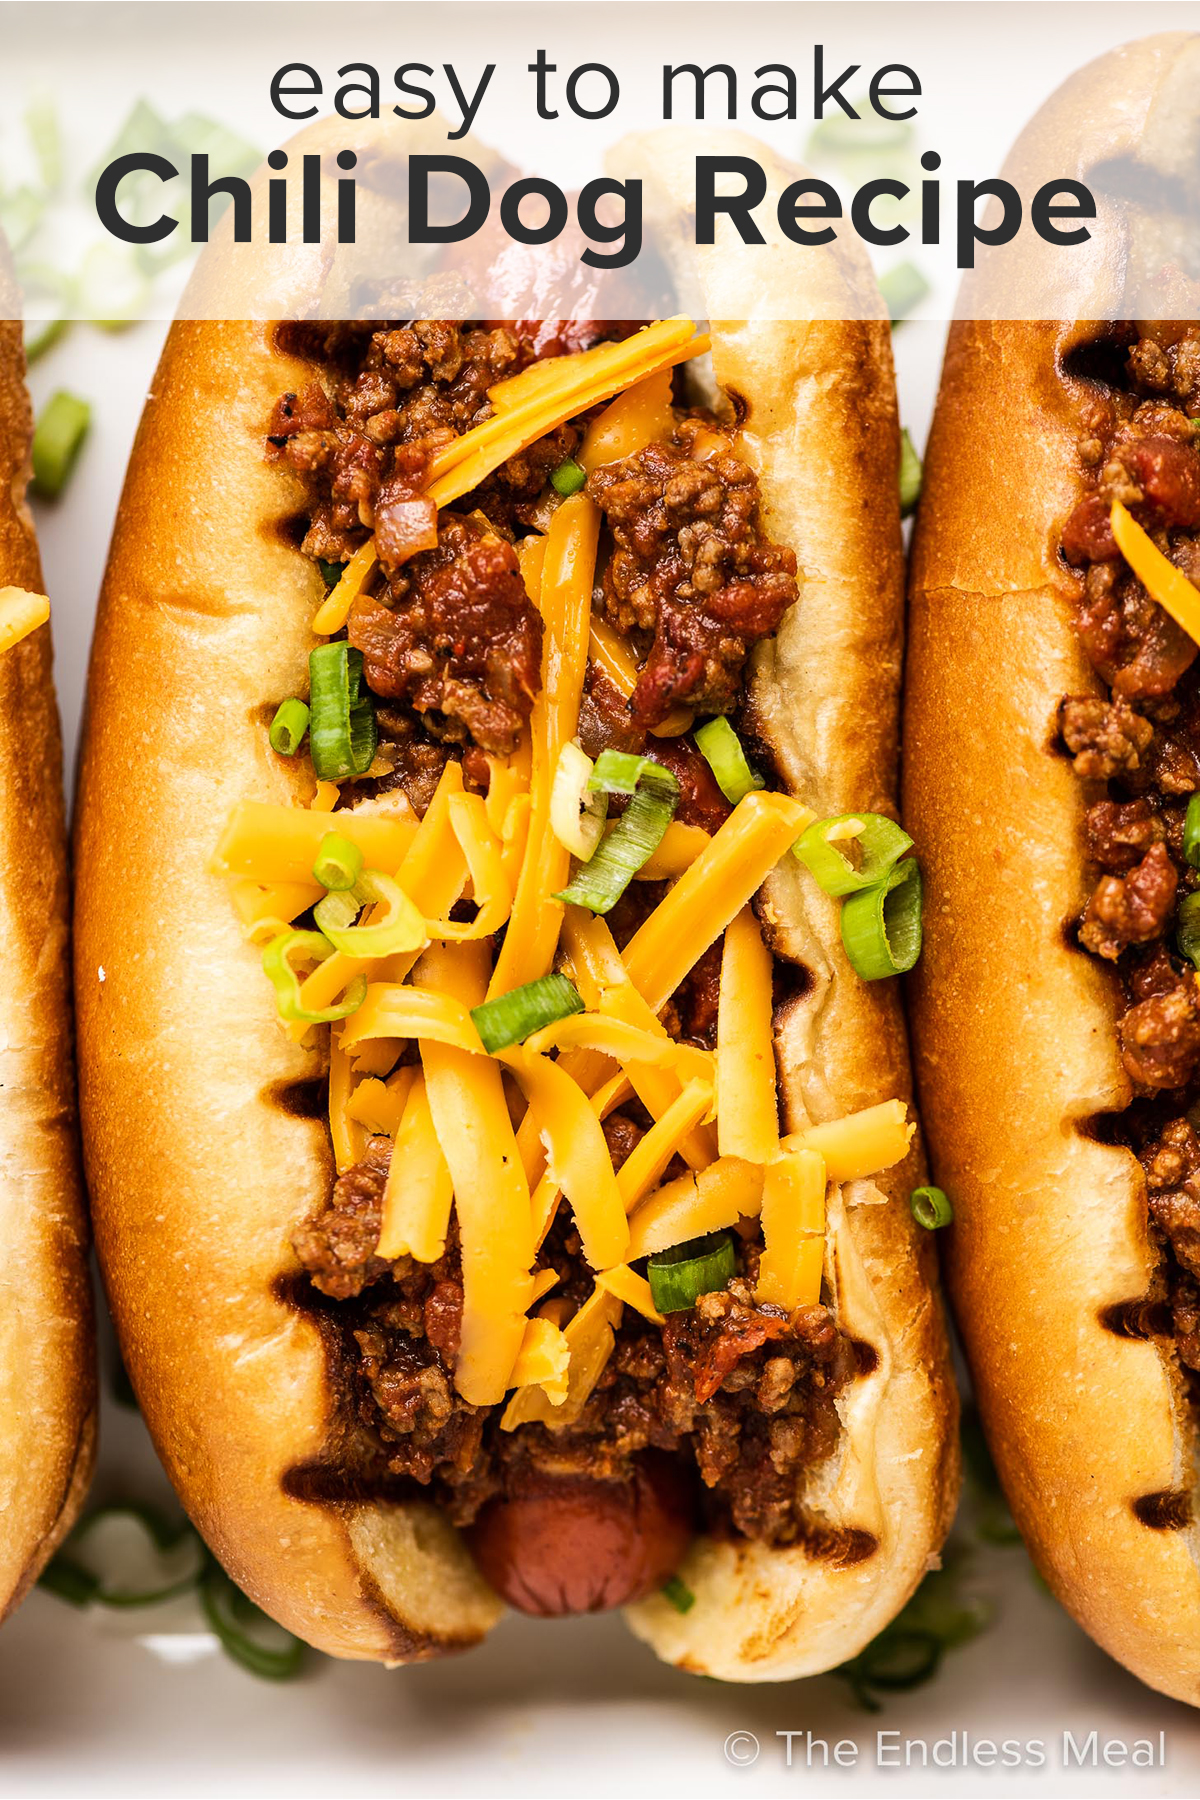 A close up of a chili cheese dog and the recipe title on top of the picture.